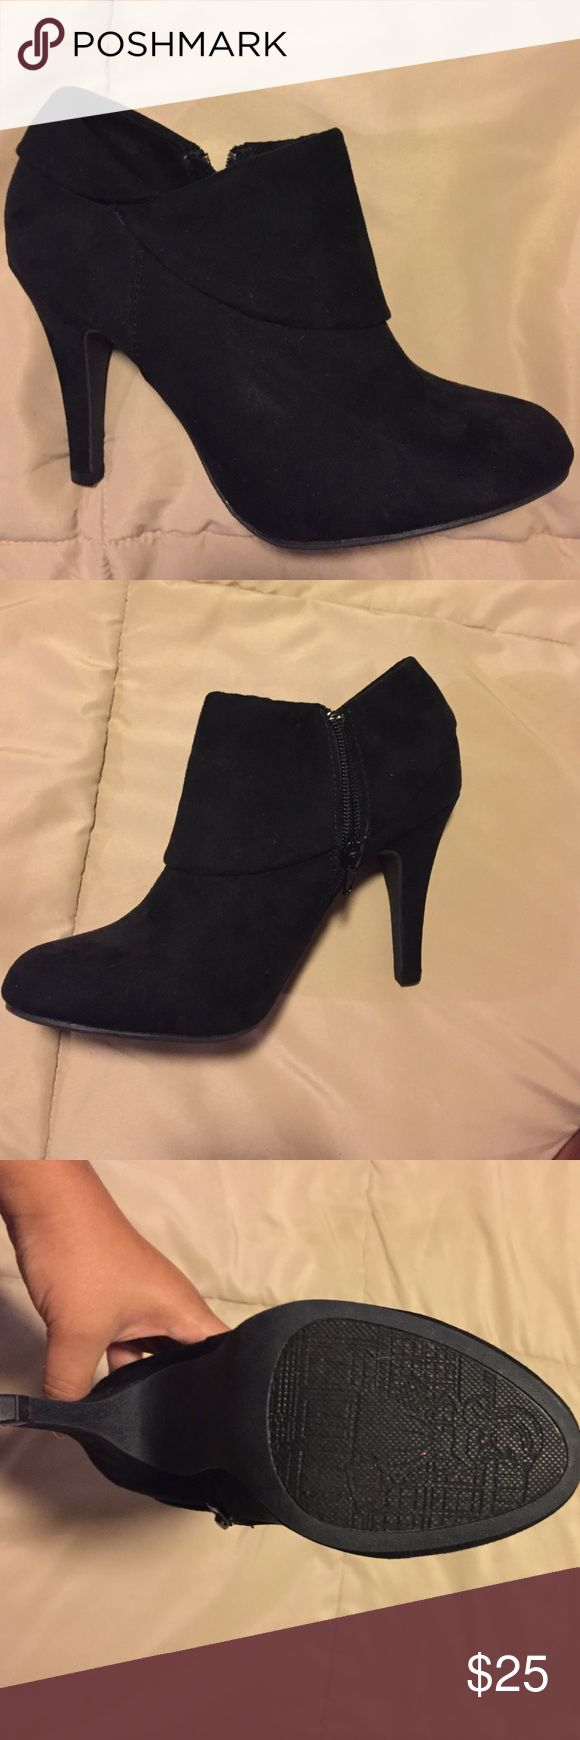 Black bootie heels New never worn. Shoes Ankle Boots & Booties